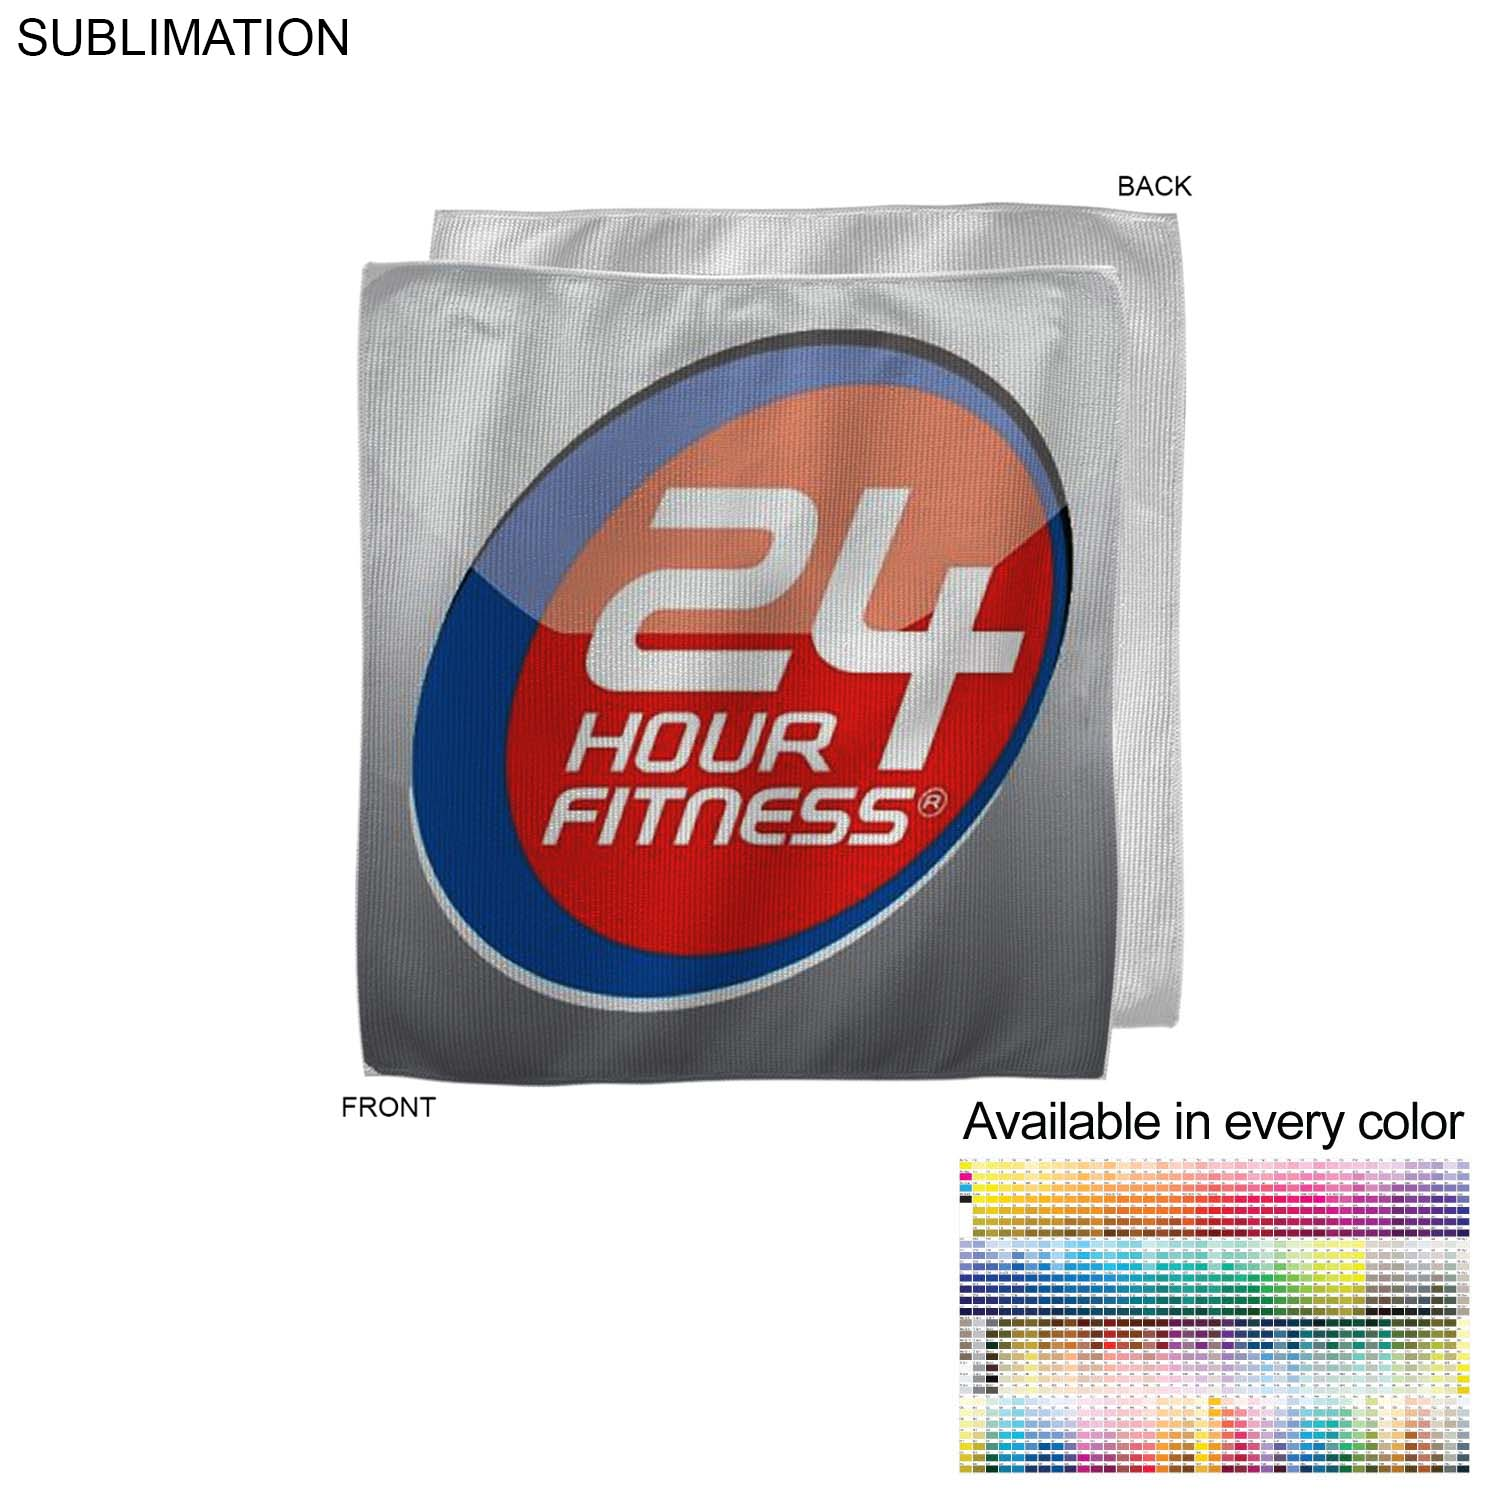 Microfiber Cooling Refresher Towel, 12x12, Sublimated - Full Colour Imprint (#SU206-4)